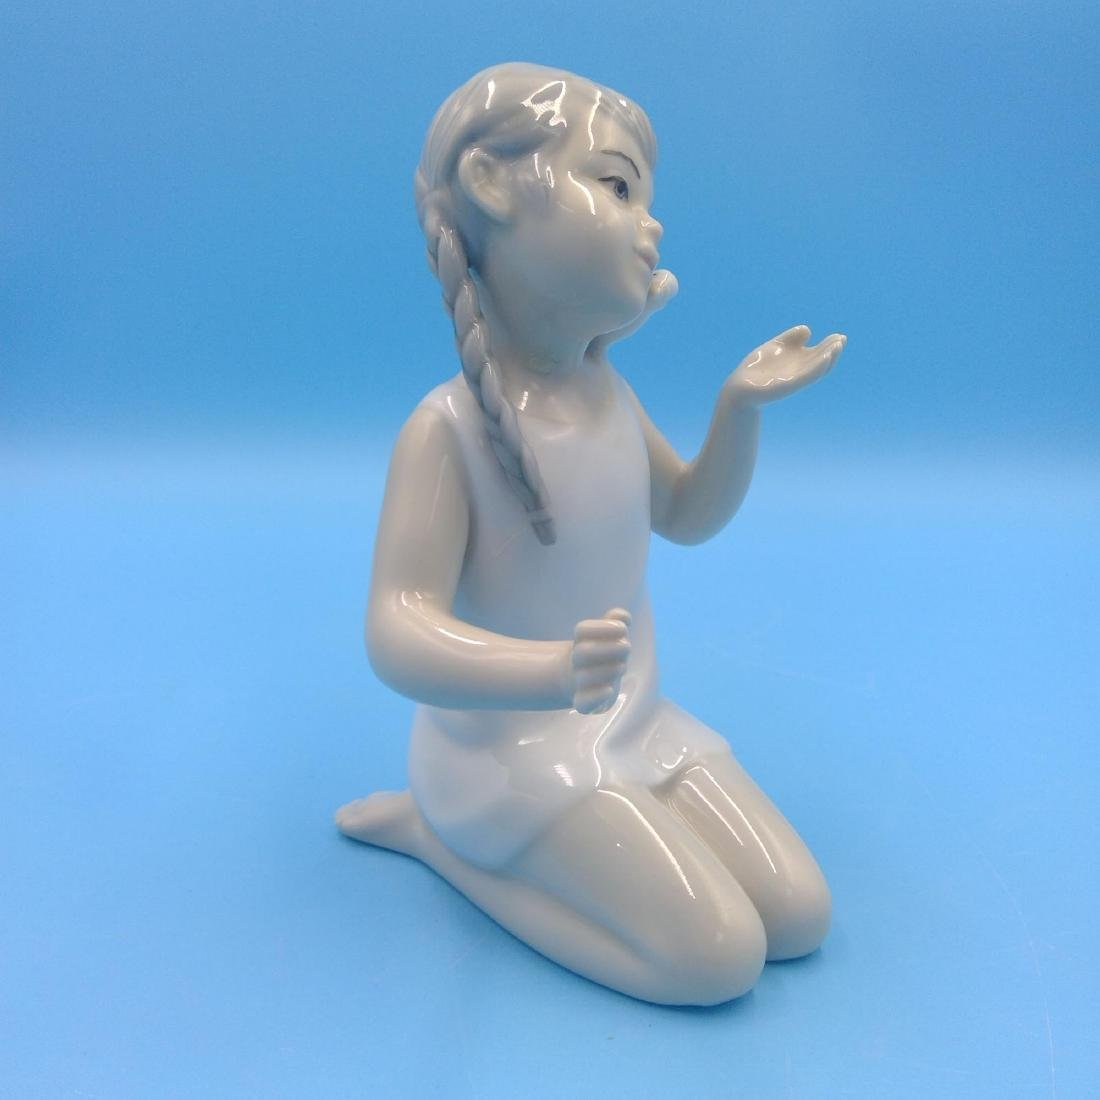 GROUP OF 3 SPANISH PORCELAIN FIGURINES - 10